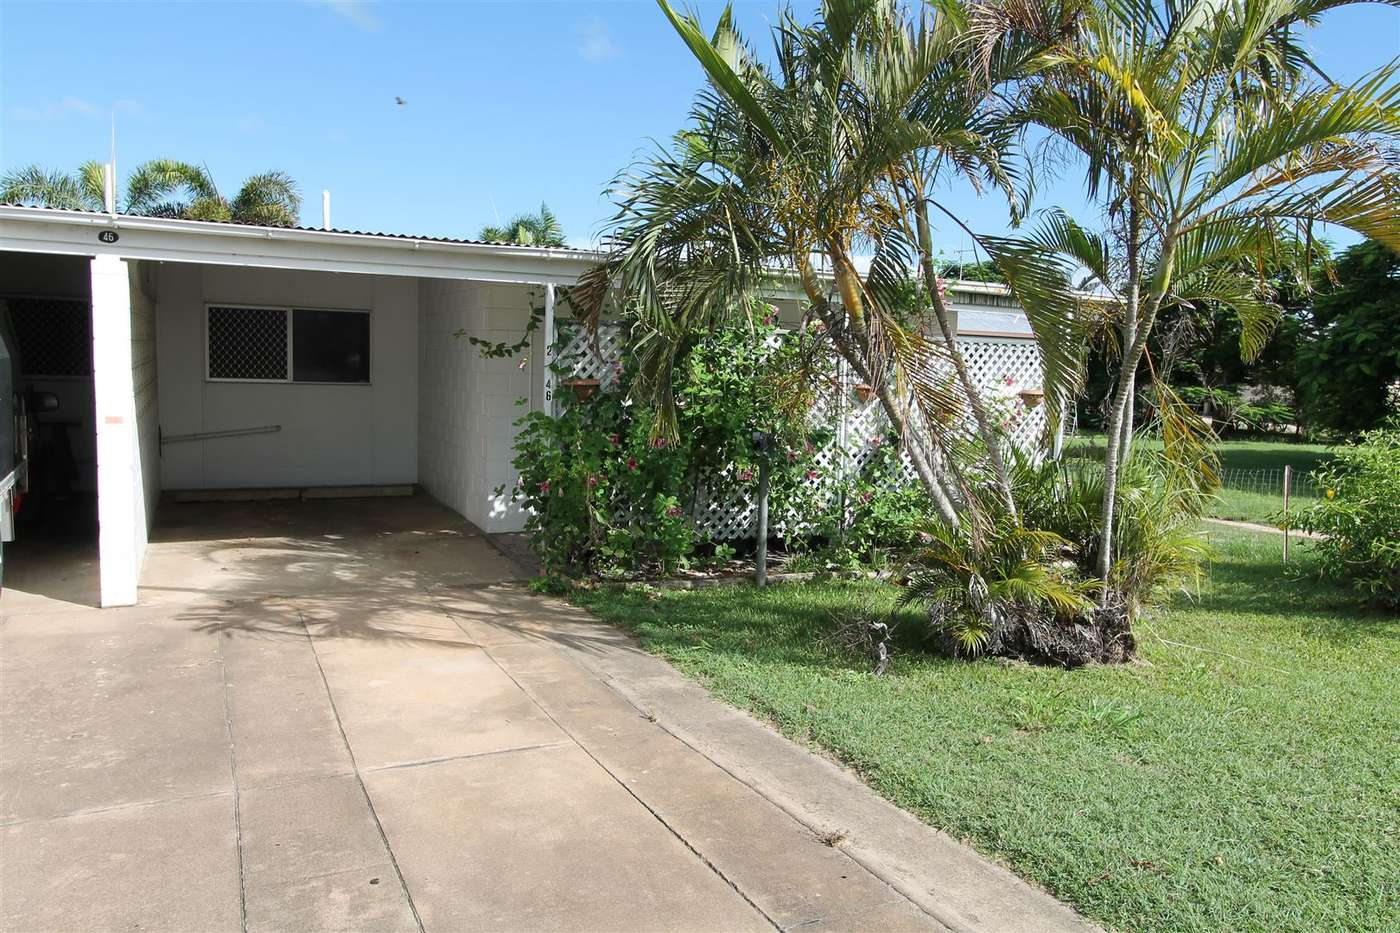 Main view of Homely unit listing, 2/46 Burke Street, Ayr, QLD 4807